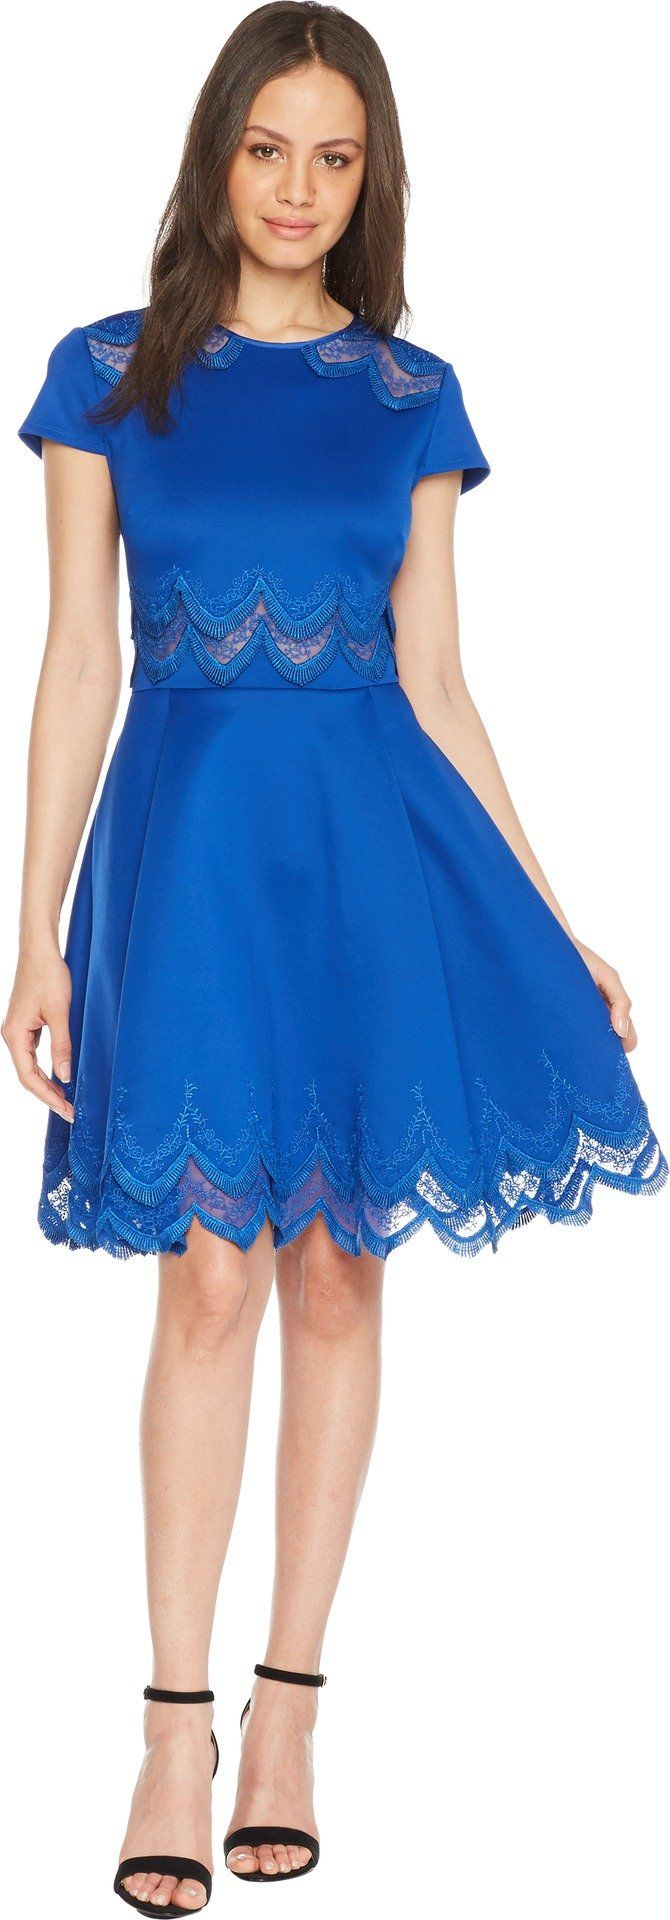 6857ff3403d2ba Ted Baker Womens Rehanna Dress Mid Blue 2 -- See this great  product-affiliate link.  dresses